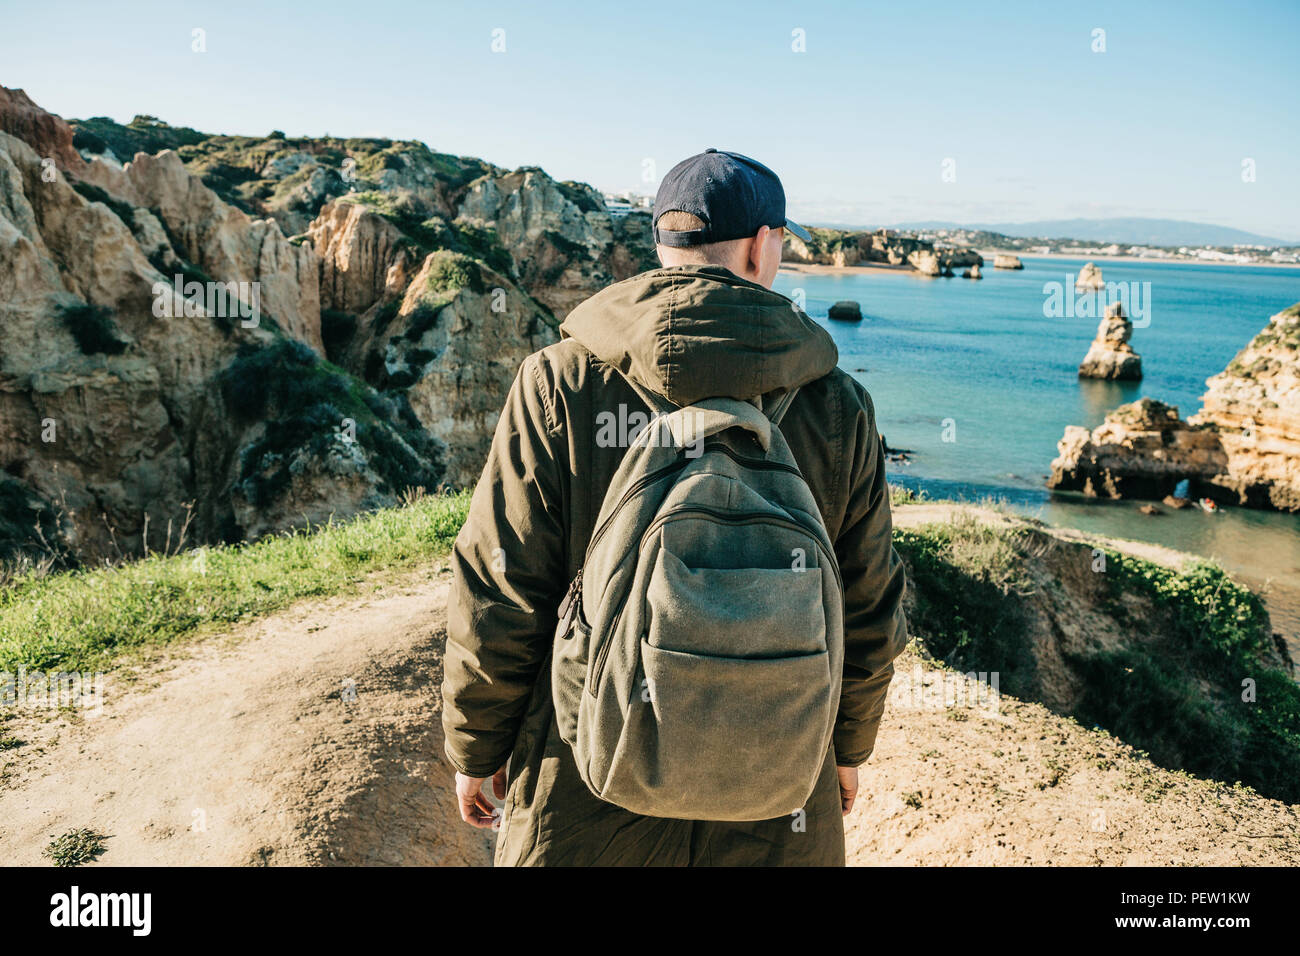 A tourist or traveler with a backpack admires the beautiful view of the  Atlantic Ocean and the coast near the city called Lagos in Portugal. d4532e20a5f82